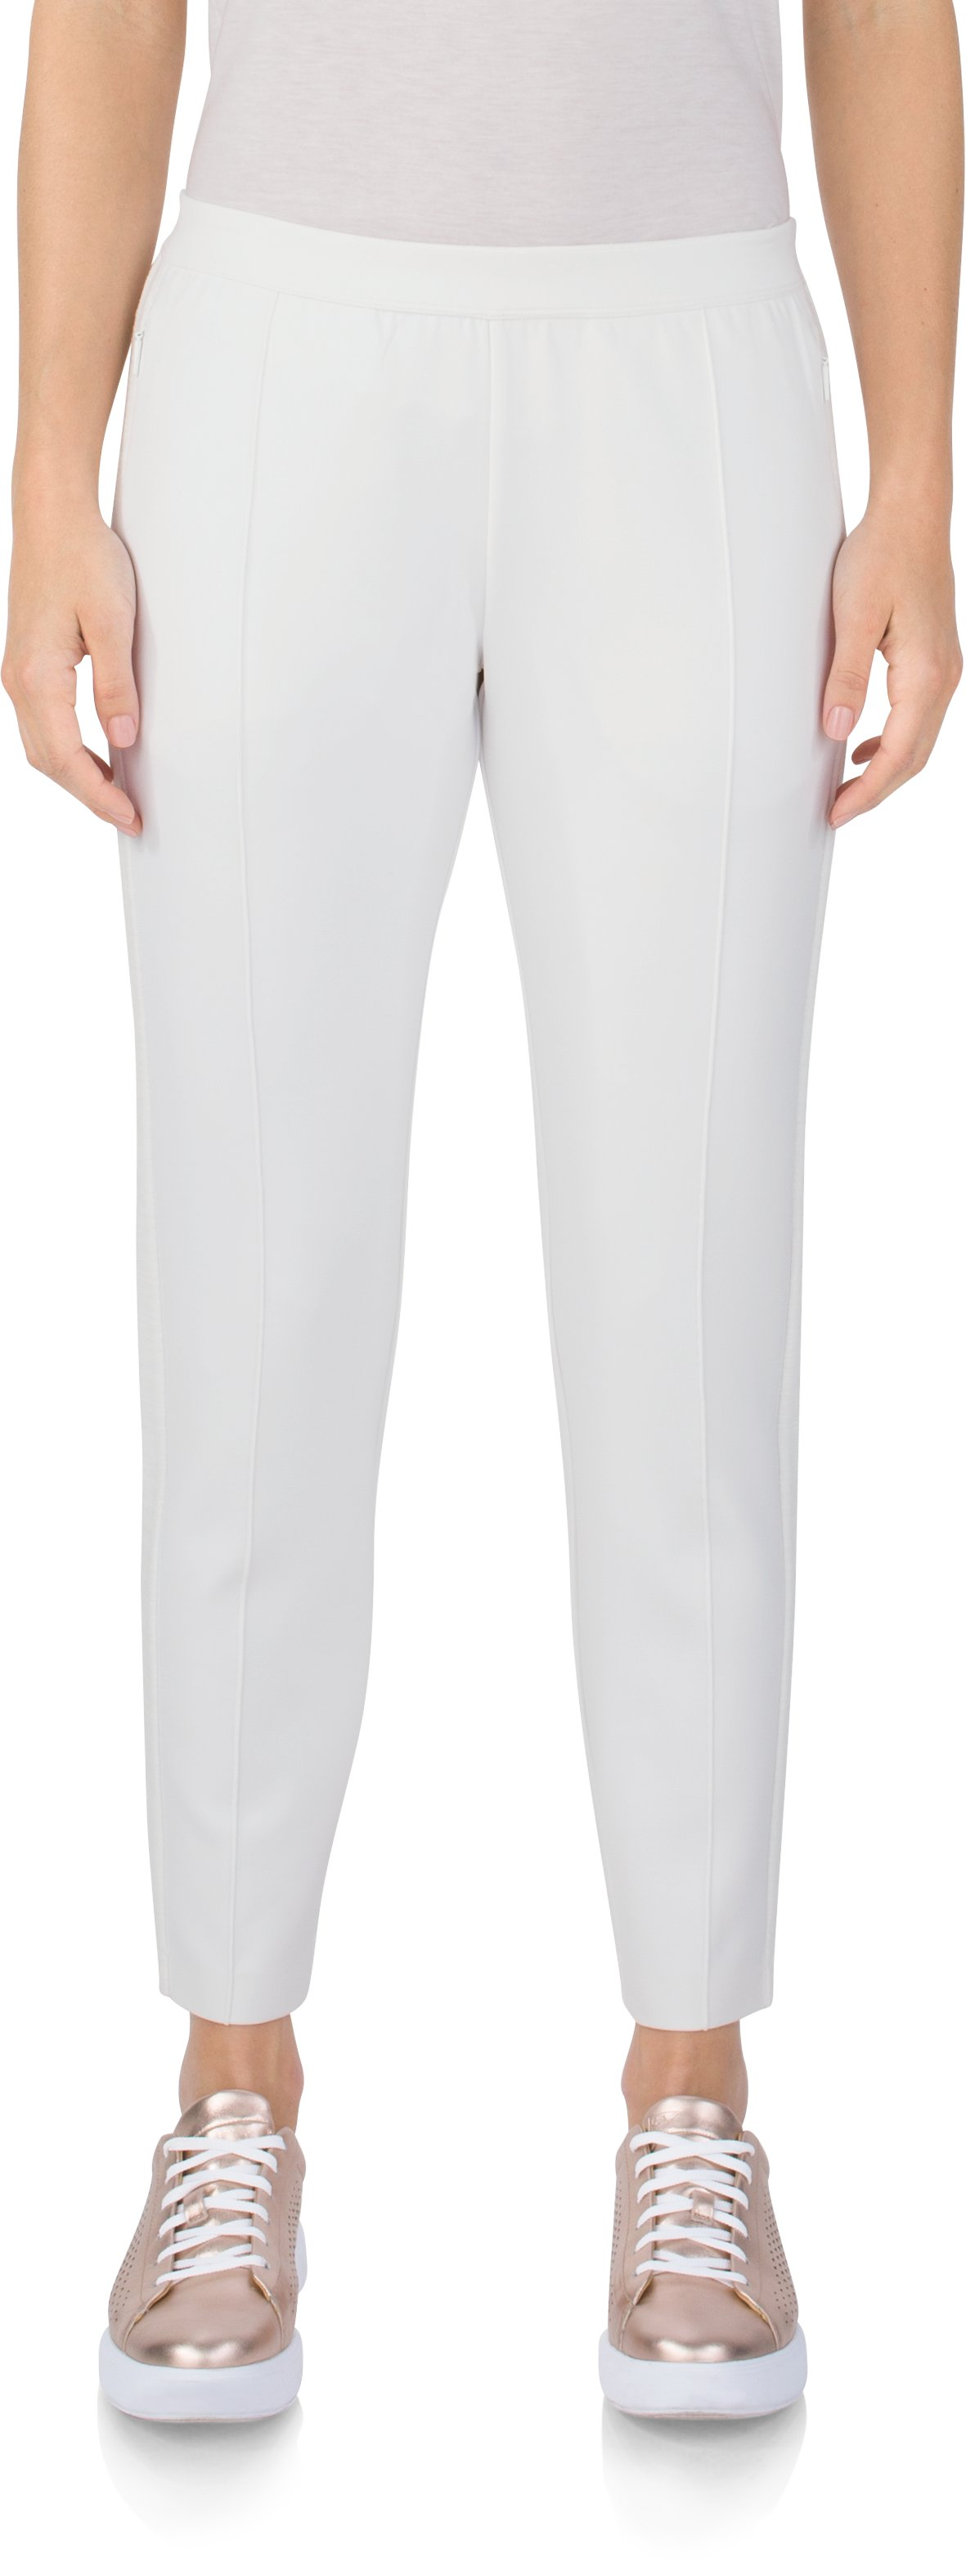 Pull On Pant - Scuba, White, zoomed image